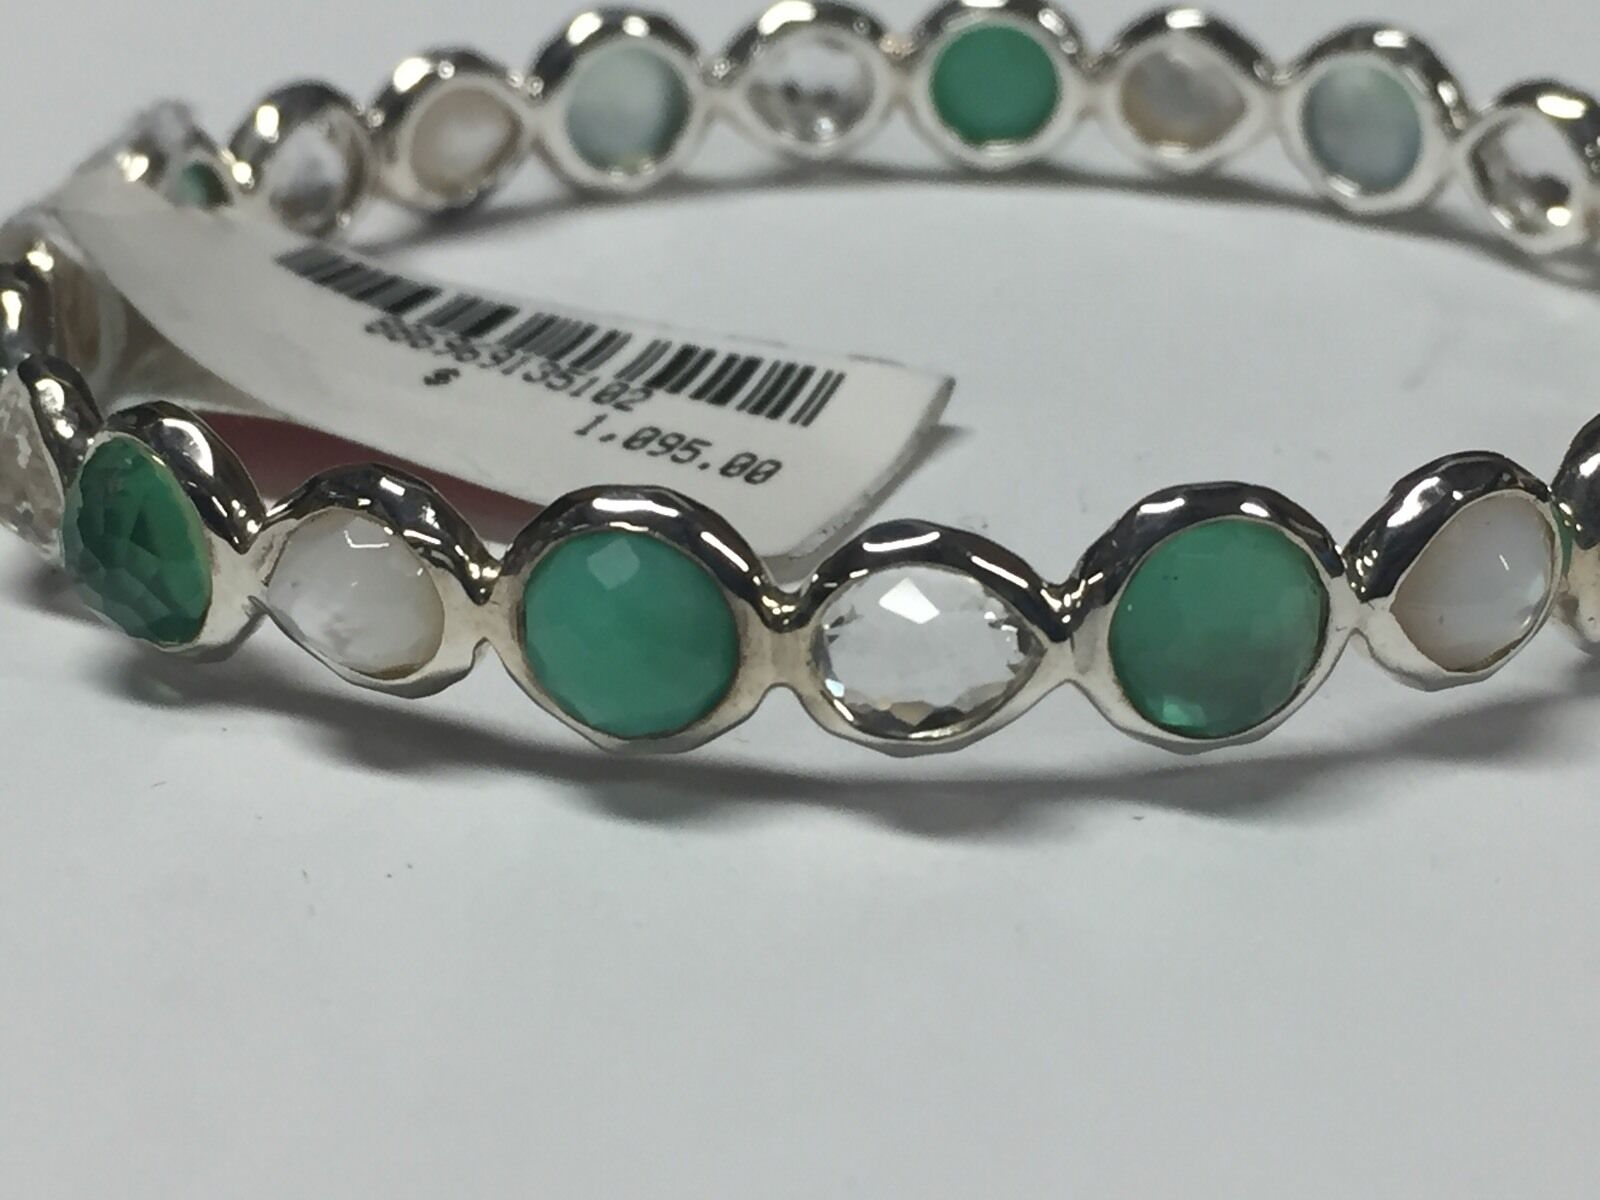 products bracelets all copy of bracelet buy lakegirl set natural surf green stone water online new fresh pearl